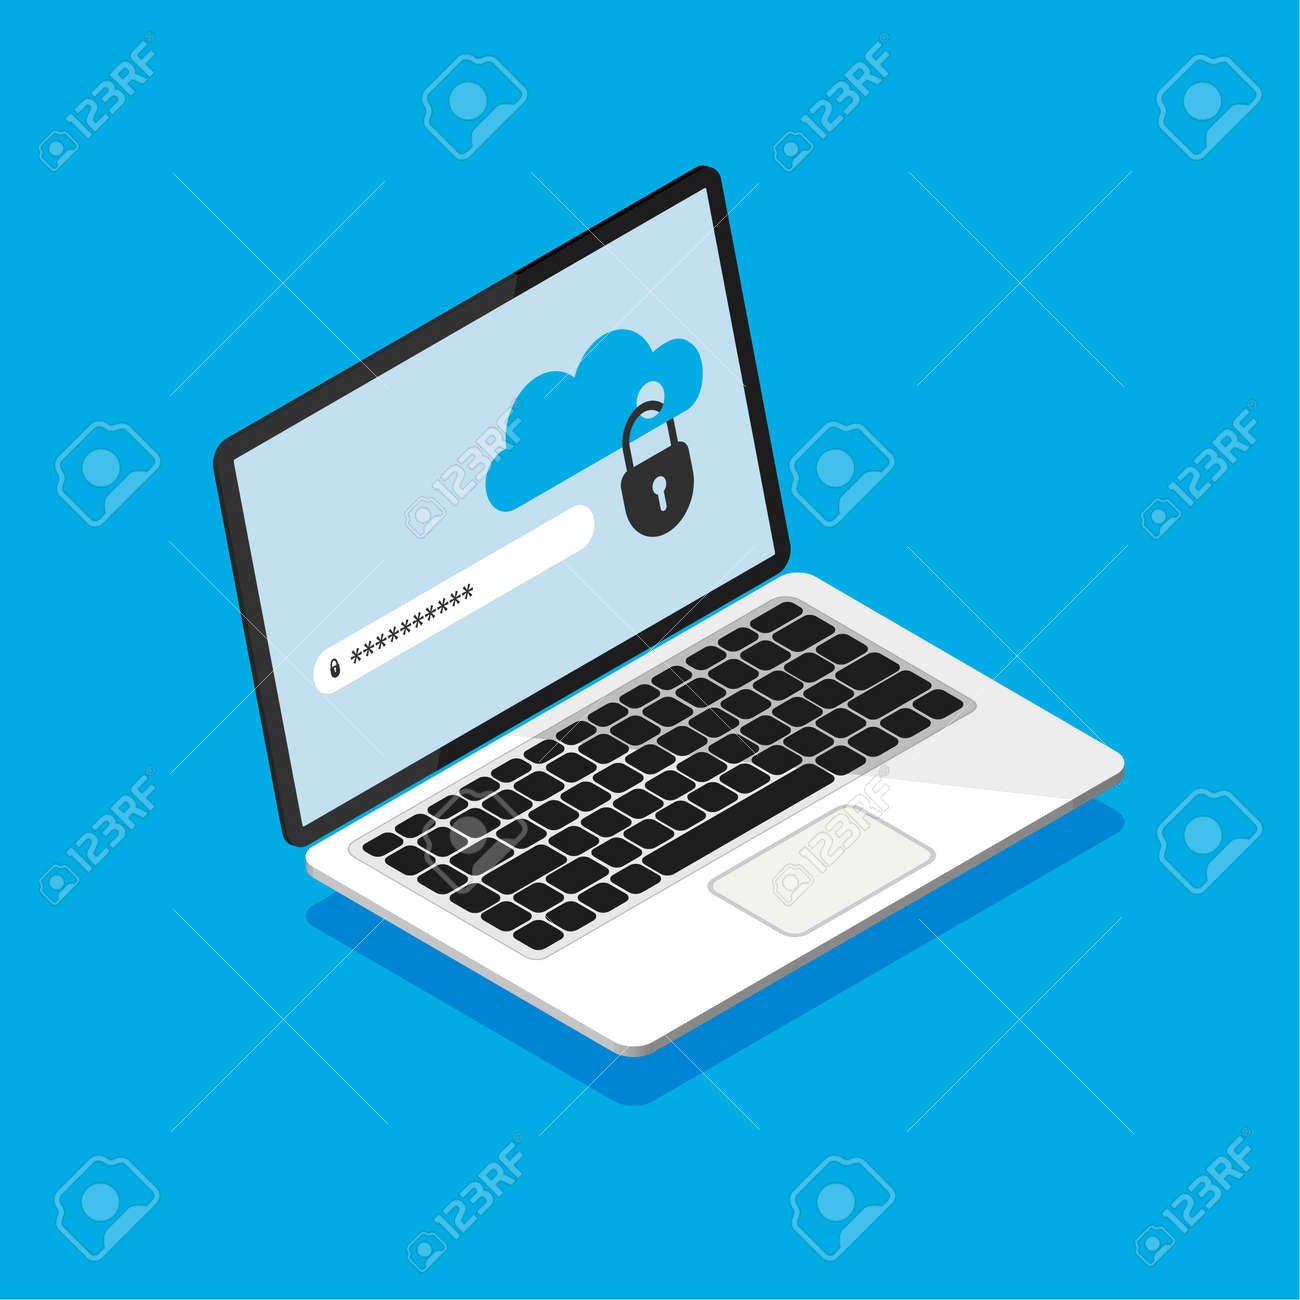 Isometric laptop with locked cloud storage on screen. File protection. Enters password. Data security and privacy concept on computer display. Safe confidential information. Vector illustration. - 167494580